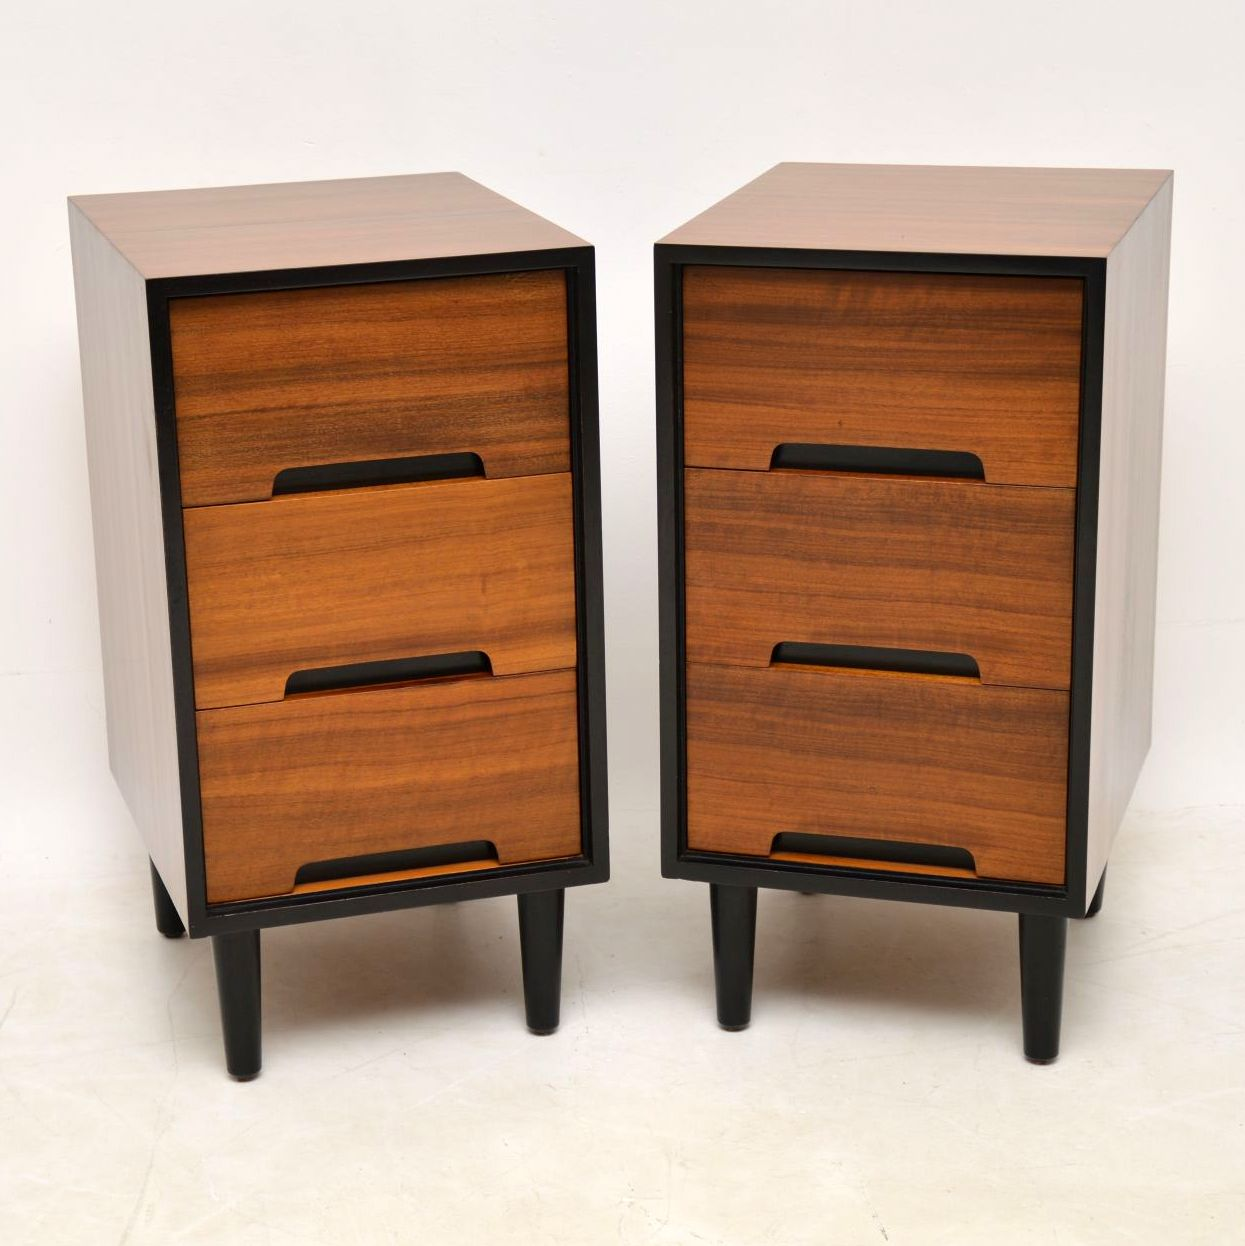 pair_of_walnut_bedside_chests_john_sylvia_reid_stag_3